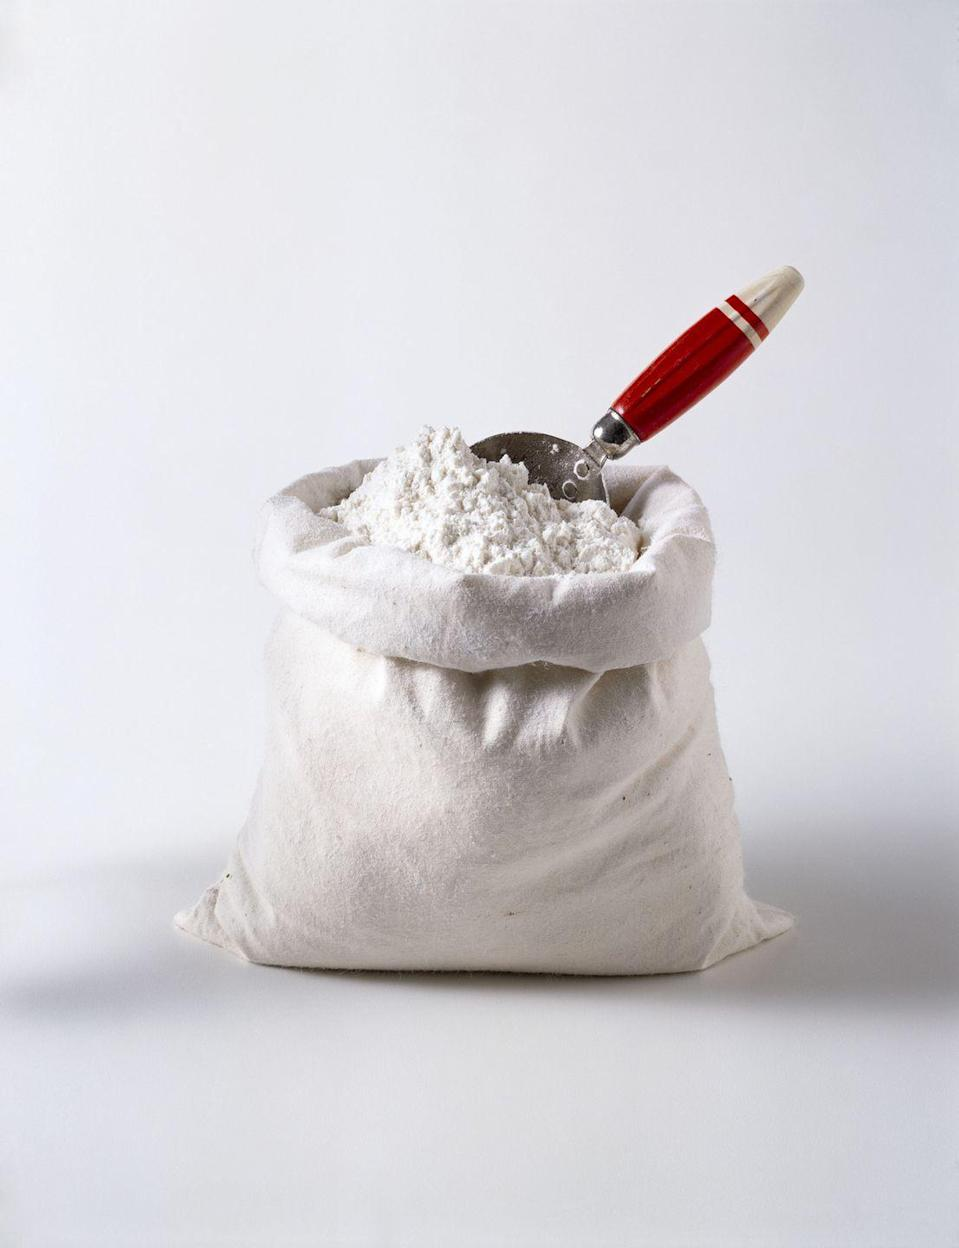 "<p>There's just one rule for this one: Avoid a messy situation by placing the bag of flour in a Ziploc bag before you begin. Then use the heavy weight to make basic bodyweight moves such as <a href=""https://www.runnersworld.com/training/a23723039/benefits-of-squats/"" rel=""nofollow noopener"" target=""_blank"" data-ylk=""slk:squats"" class=""link rapid-noclick-resp"">squats </a>and lunges more challenging.</p>"